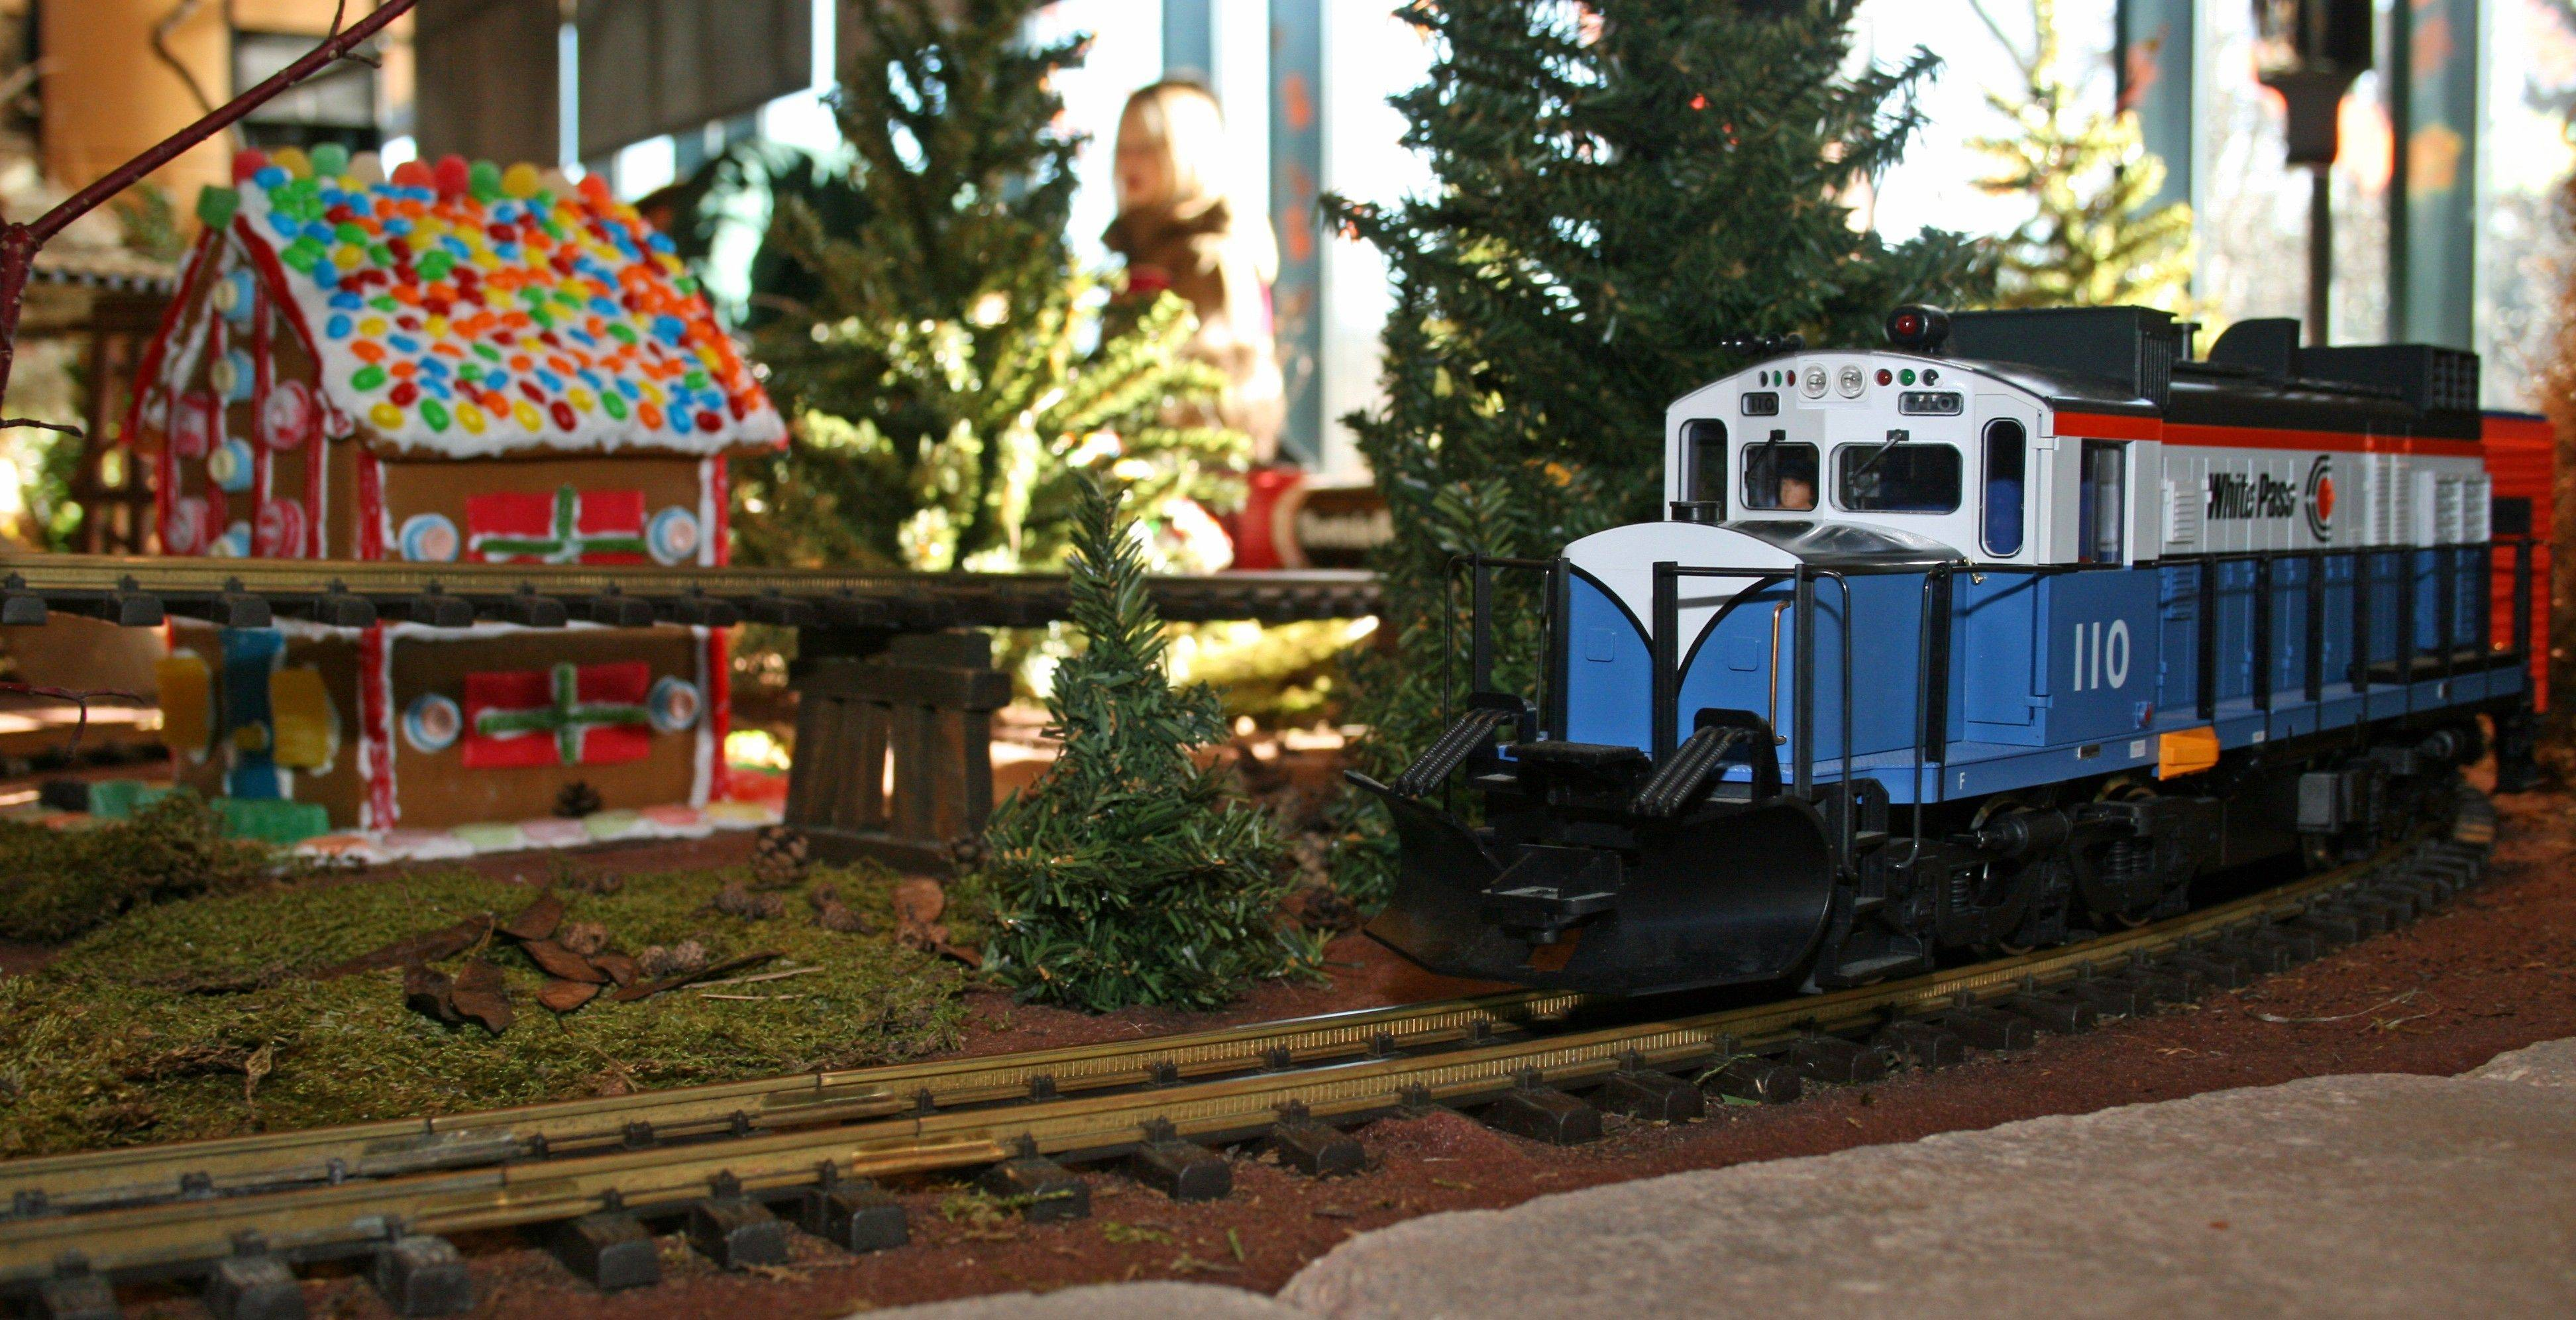 Visitors to Morton Arboretum can enjoy the new Enchanted Railroad model train display.